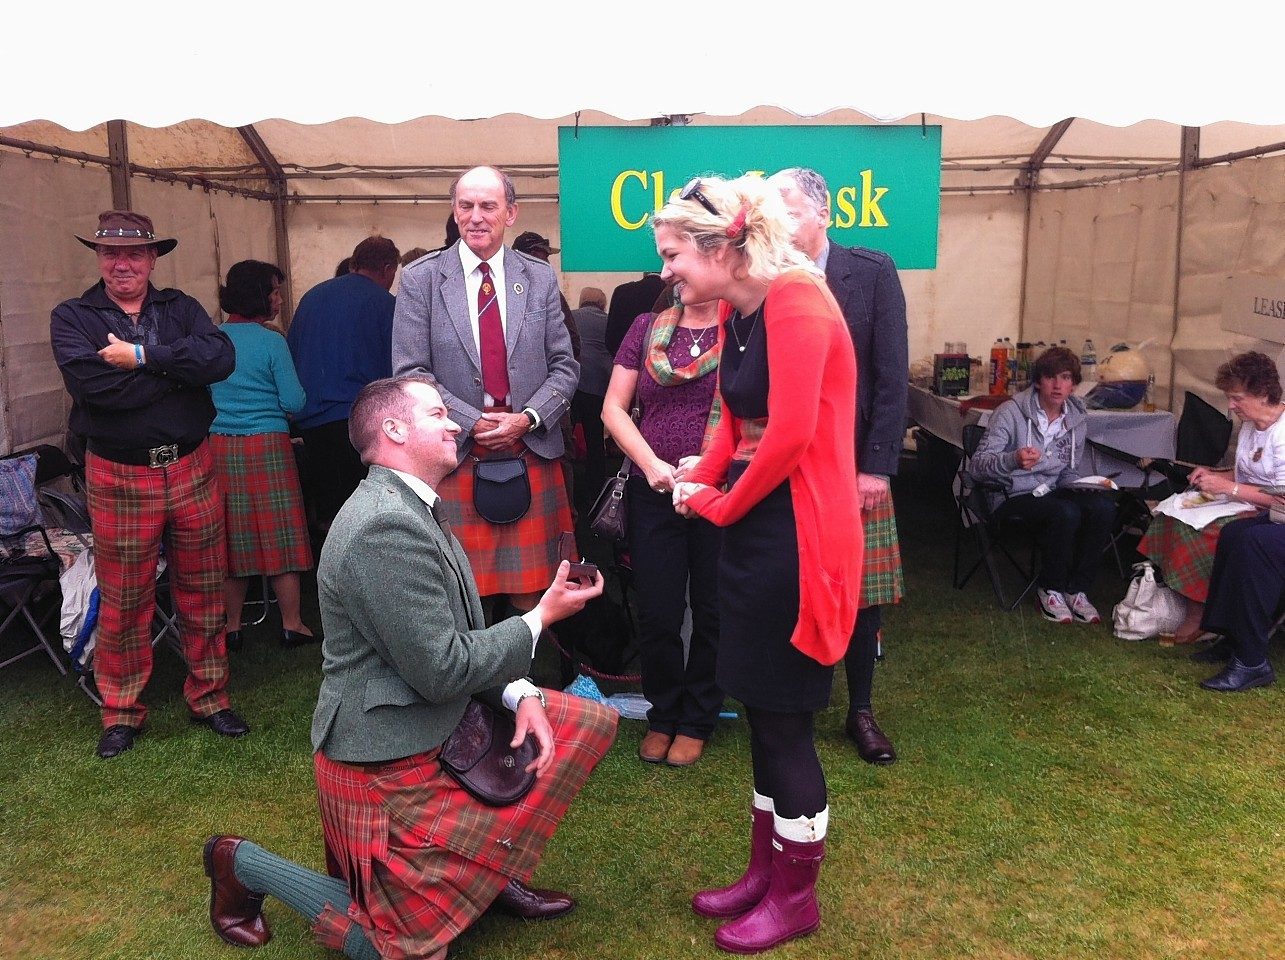 Clansman Sandy Leask proposed to Fiona Miller at last year's Aboyne Highland Games, returning this year just weeks before their wedding.